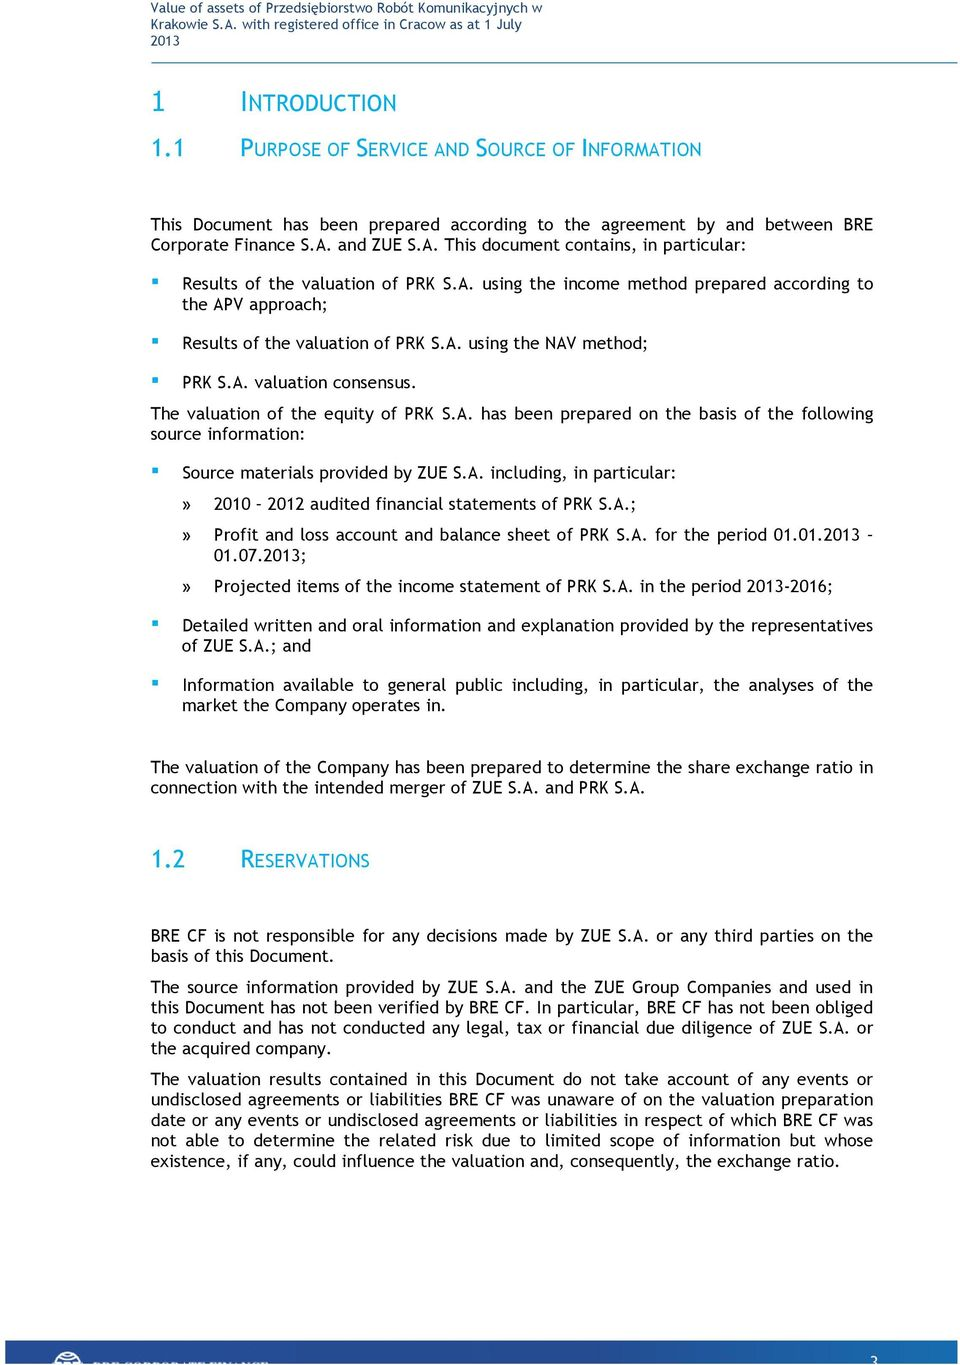 A. including, in particular:» 2010 2012 audited financial statements of PRK S.A.;» Profit and loss account and balance sheet of PRK S.A. for the period 01.01. 01.07.